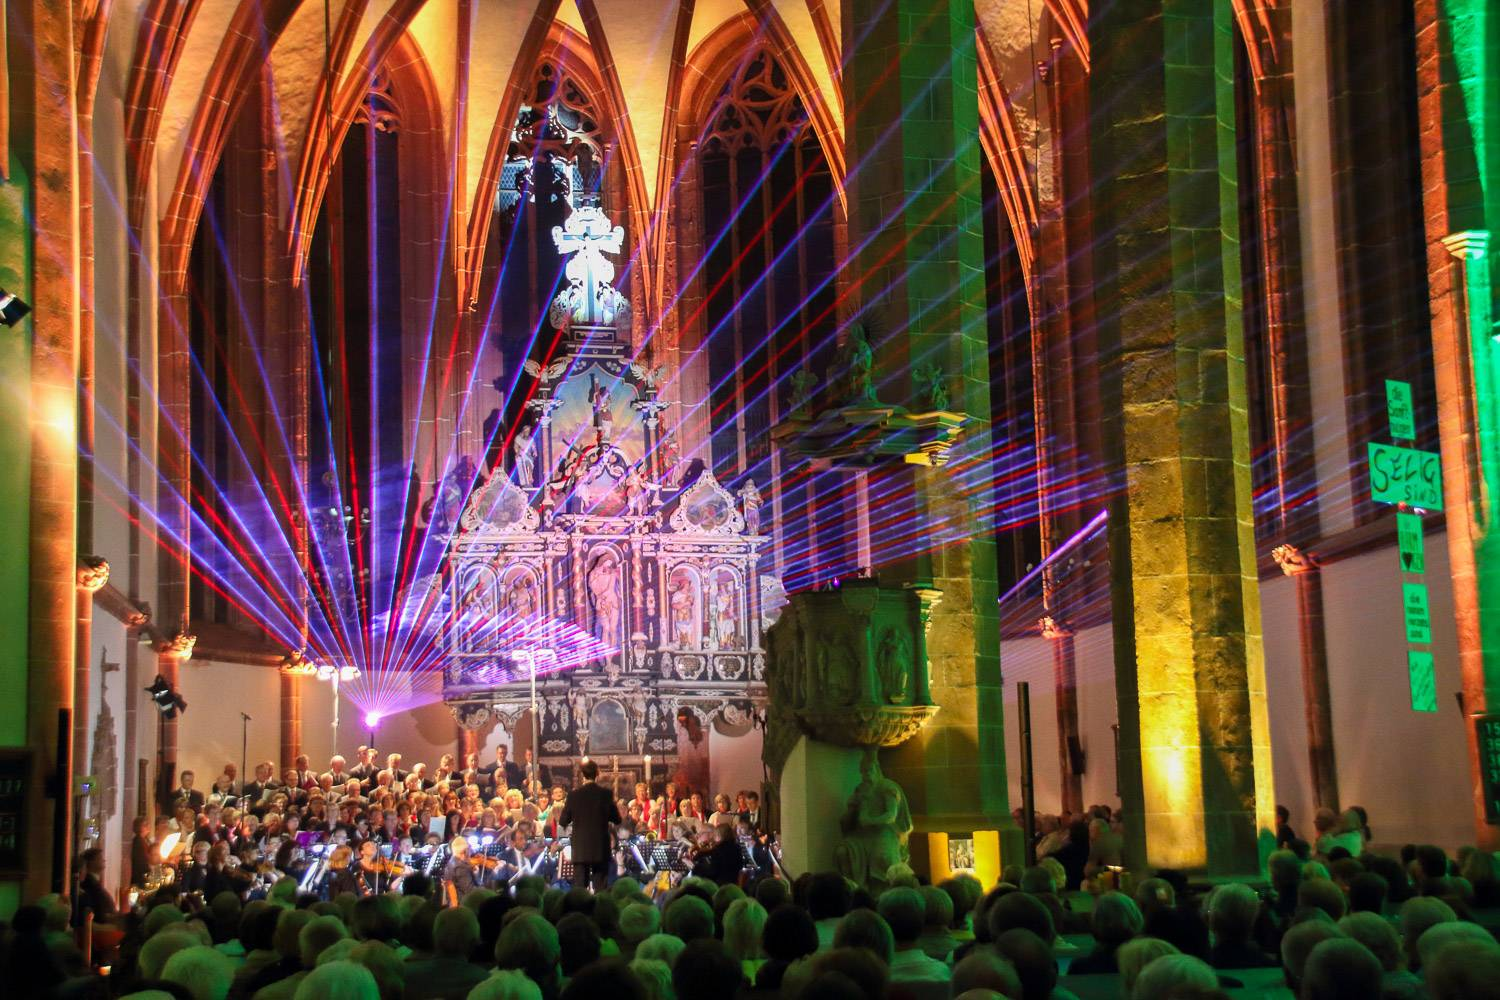 Alt Text: Image of the Sainte Chapelle during a concert with colorful lights shining from the stage towards the audience.